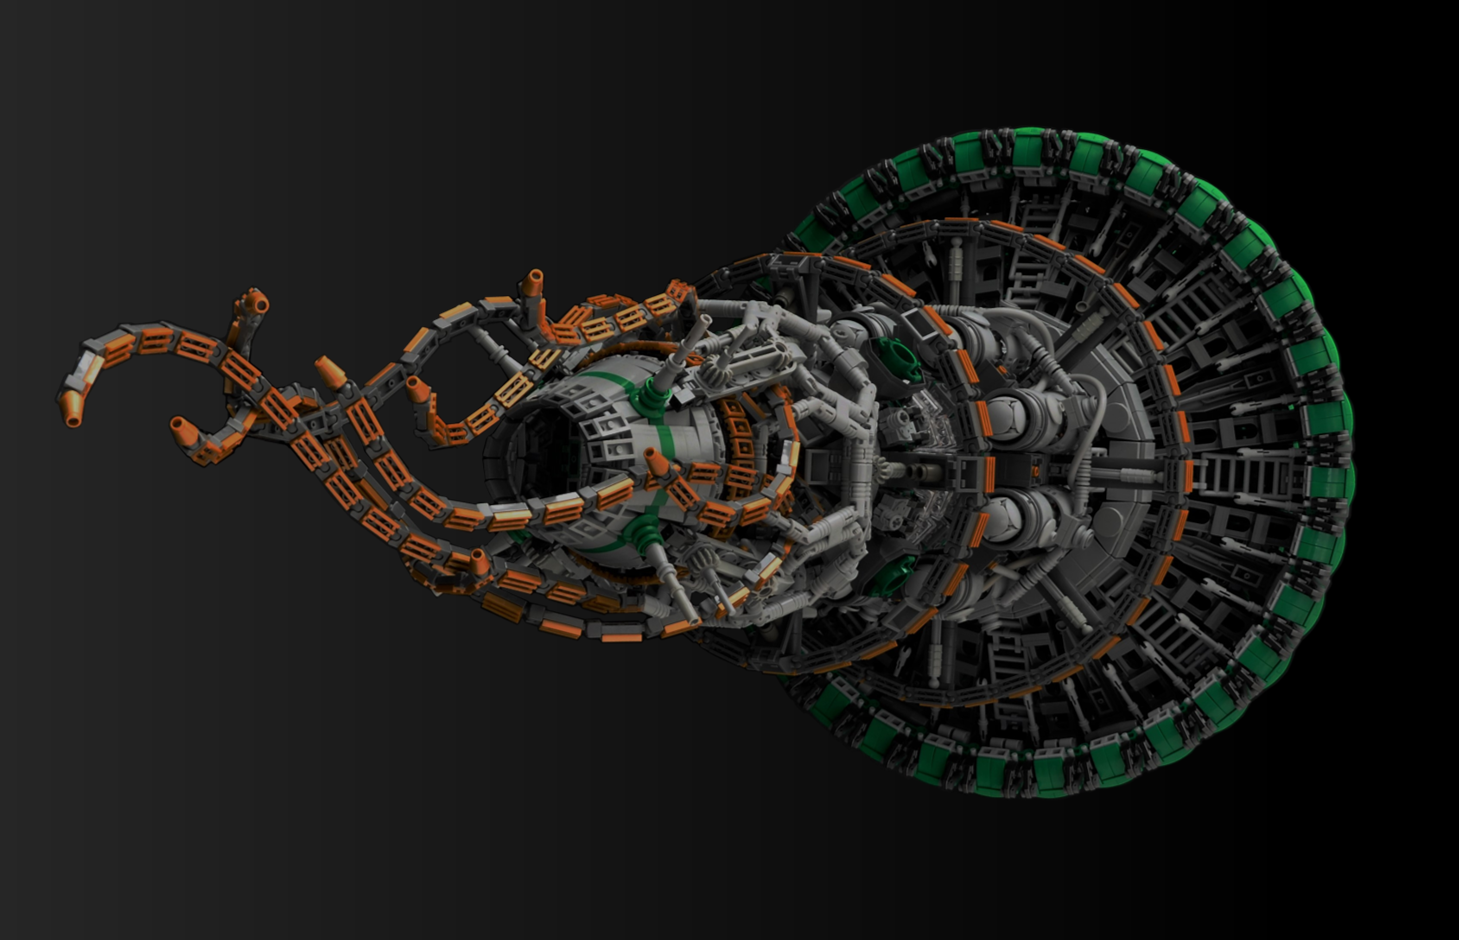 lego moc space ship